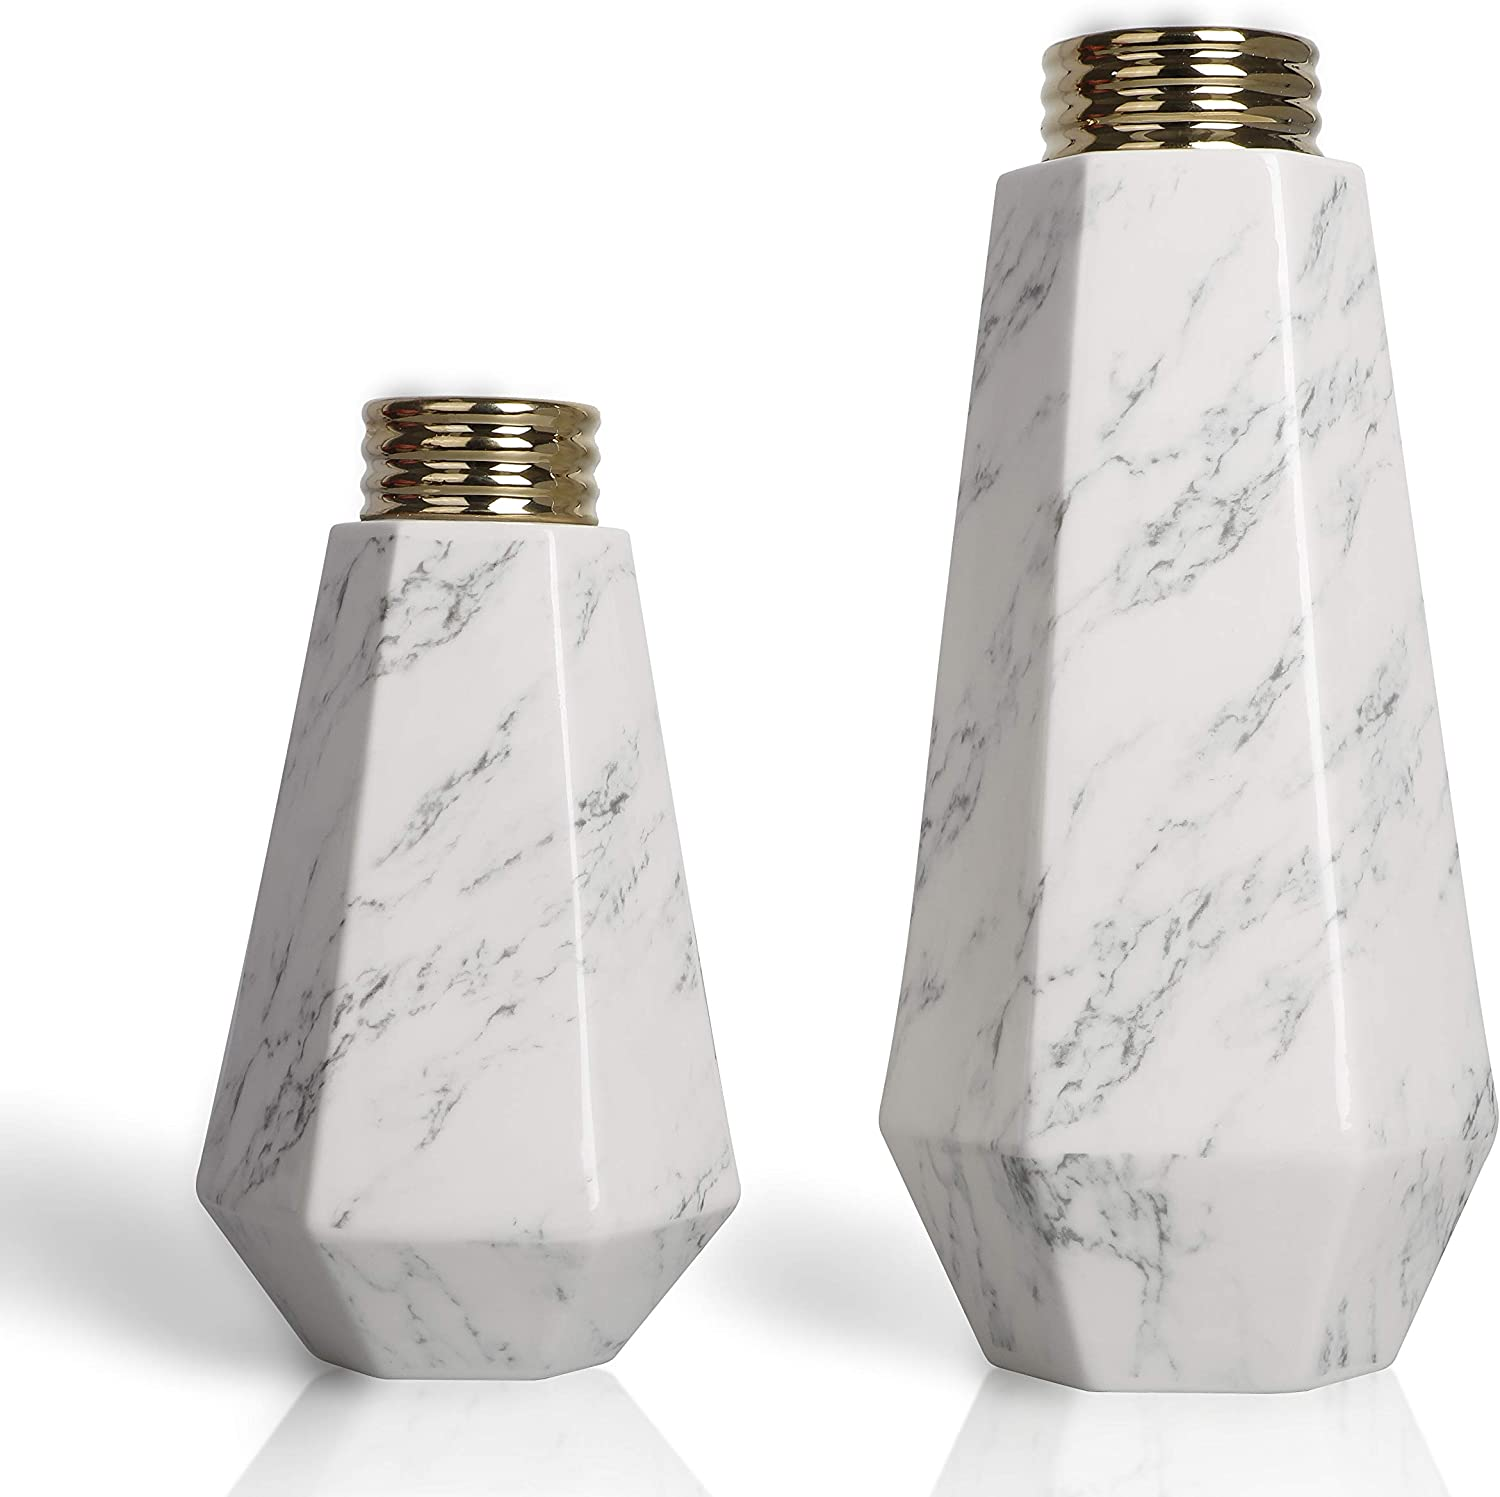 TERESA'S COLLECTIONS Set of 2 Ceramic Modern Flower Vases, Marble Texture with Gold Detailing,Geometric Decorative White Vases for Kitchen,Office,Wedding or Living Room